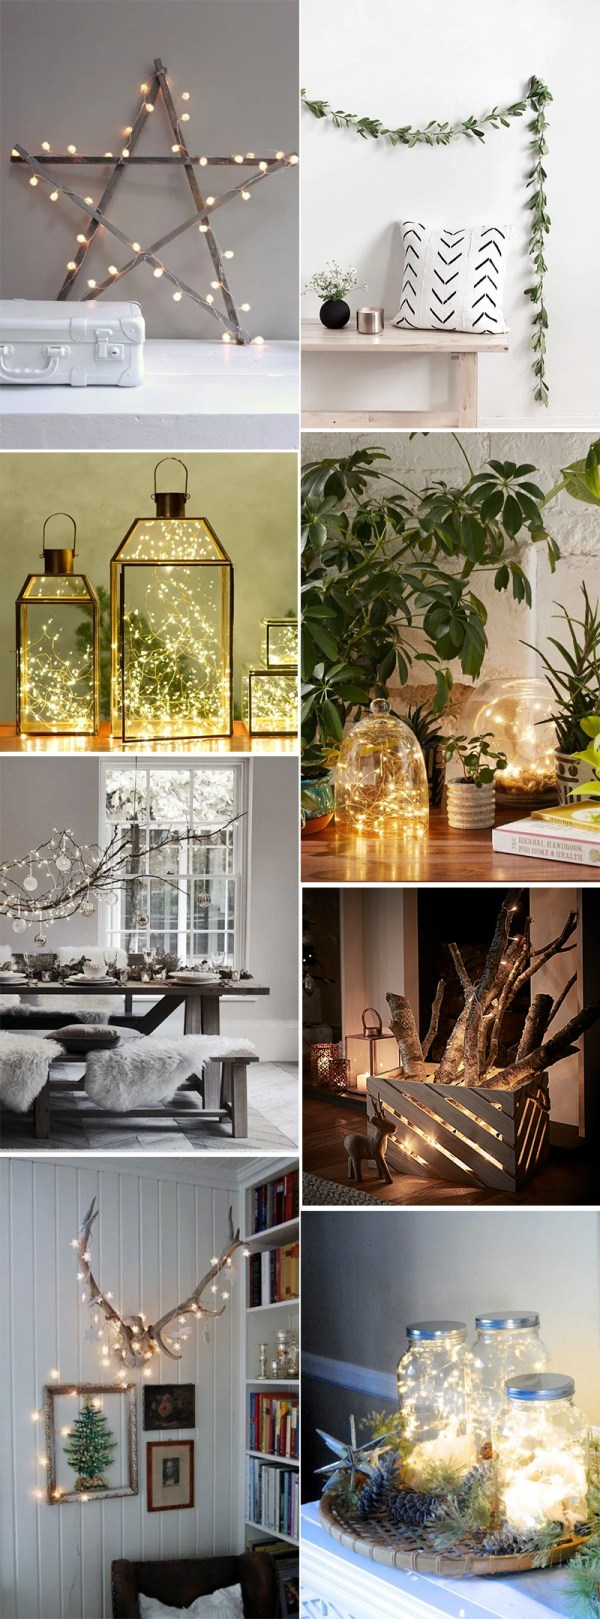 Simple Holiday Decor with White Lights